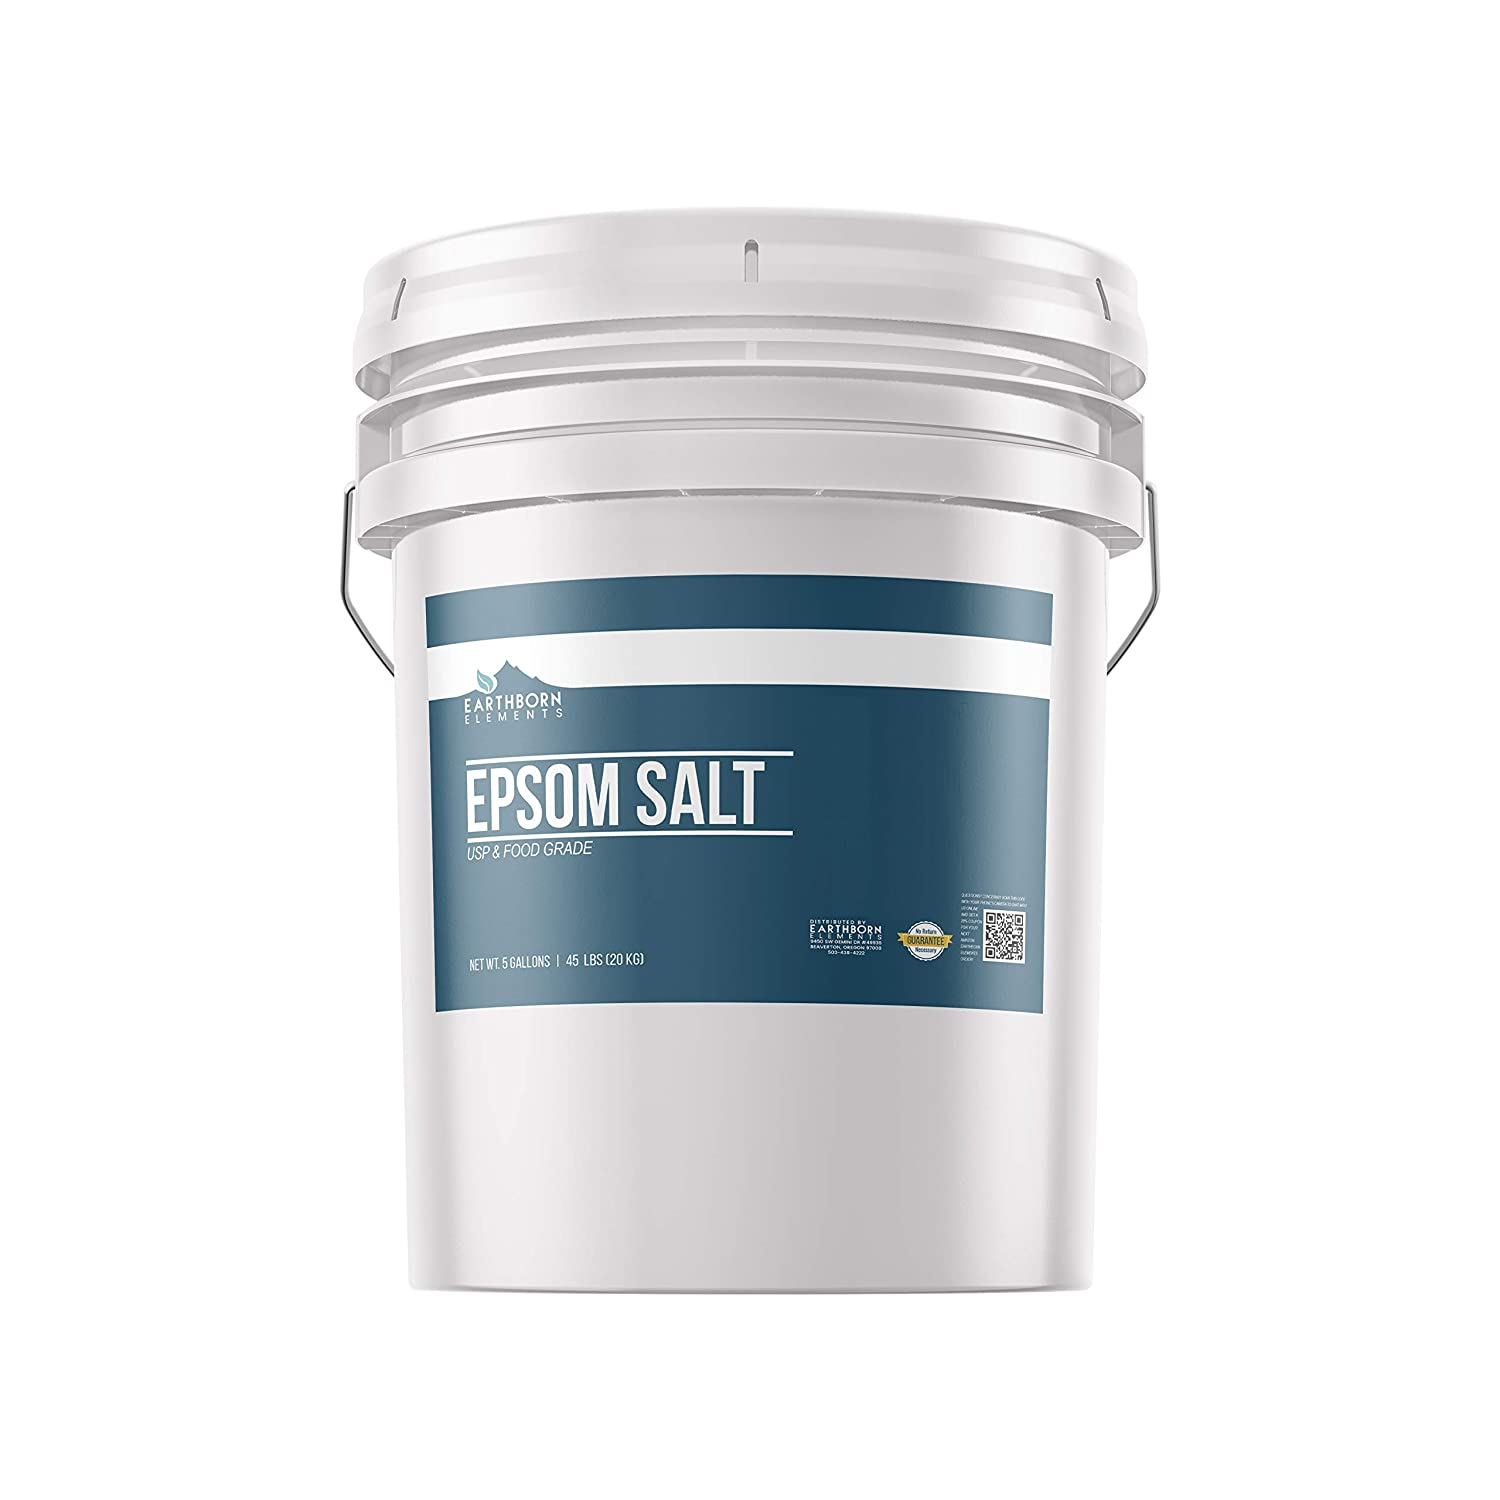 Epsom Salt (5 Gallon (45 lbs.) by Earthborn Elements, Resealable Bucket, Magnesium Sulfate Soaking Solution, All-Natural, Highest Quality & Purity, USP Grade